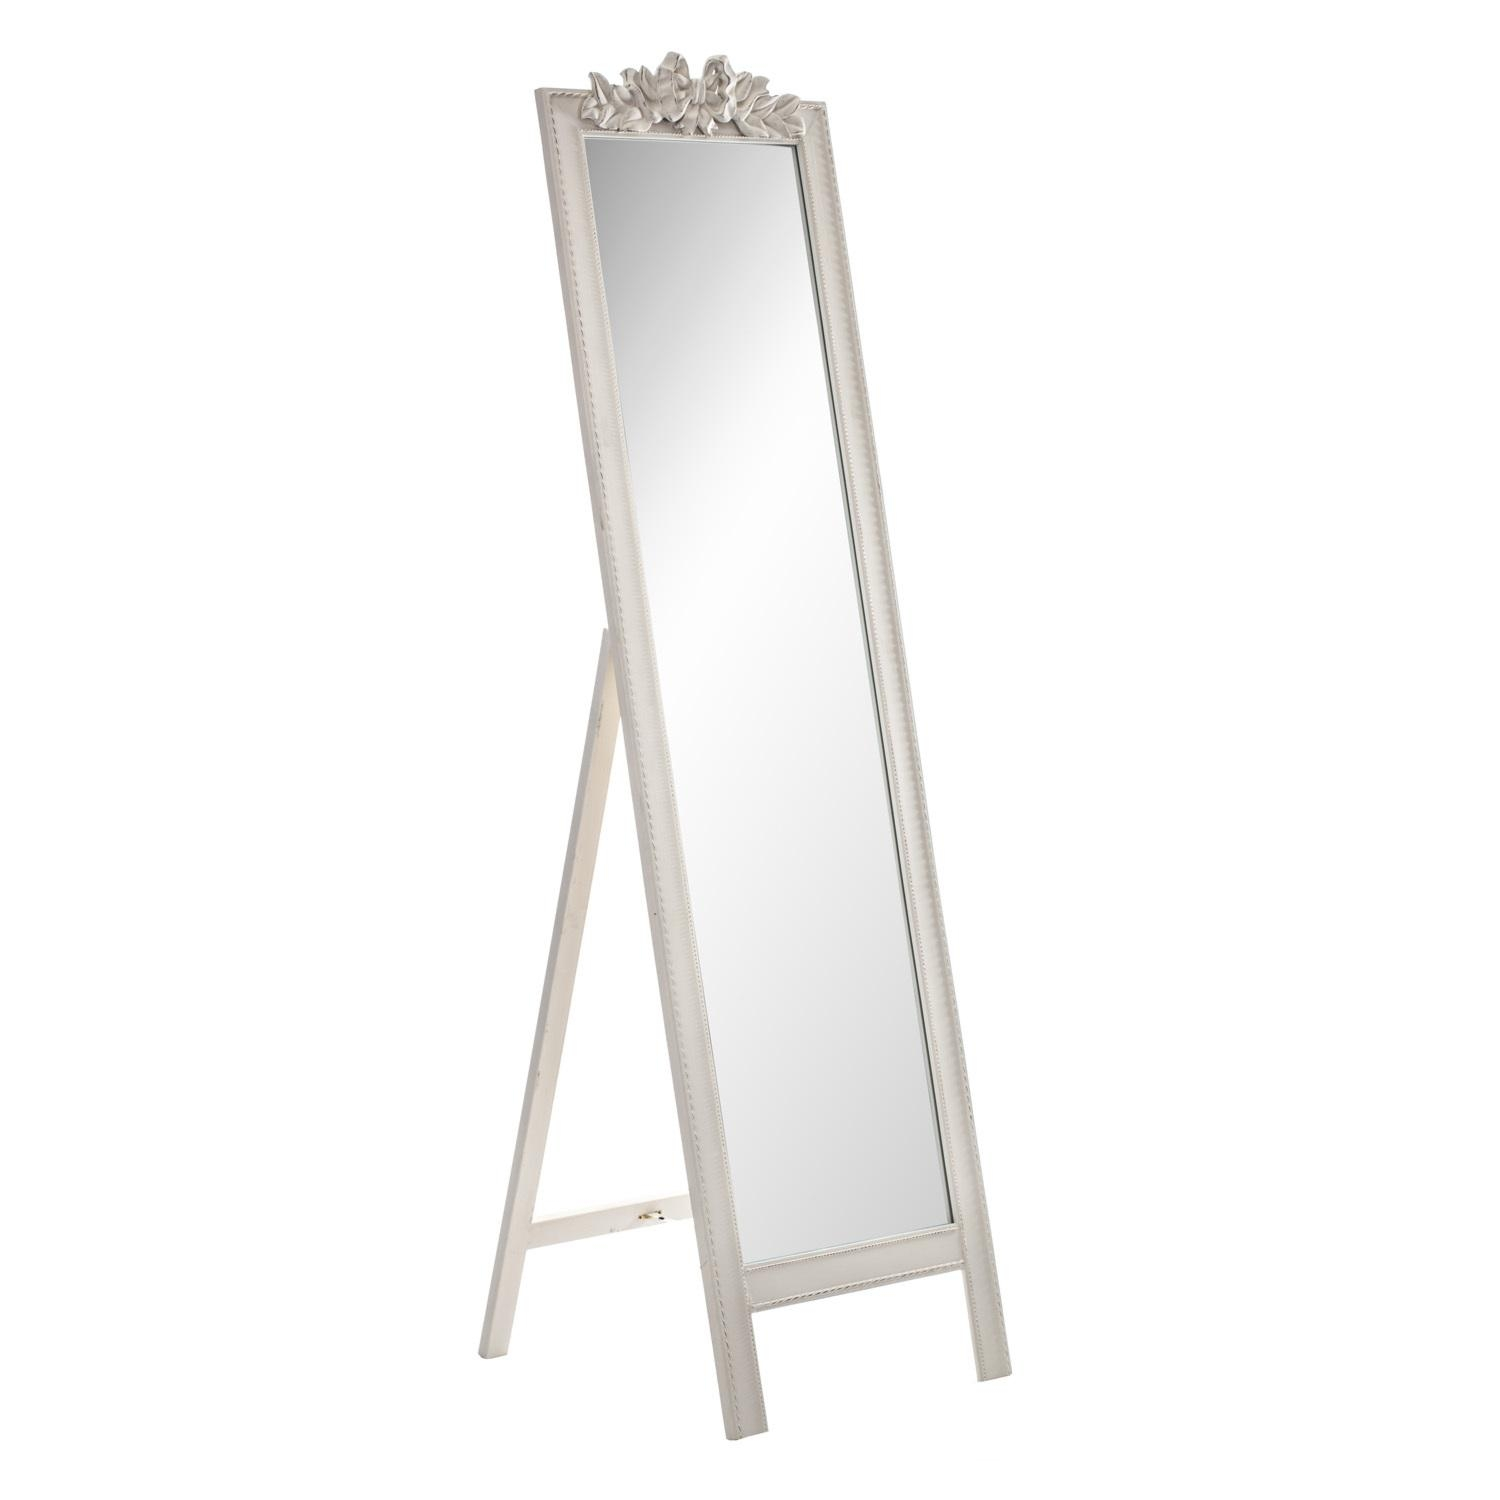 Homeware: Full Length Mirror On A Stand | Floor Length Wall Pertaining To Dressing Mirrors Free Standing (Image 15 of 20)